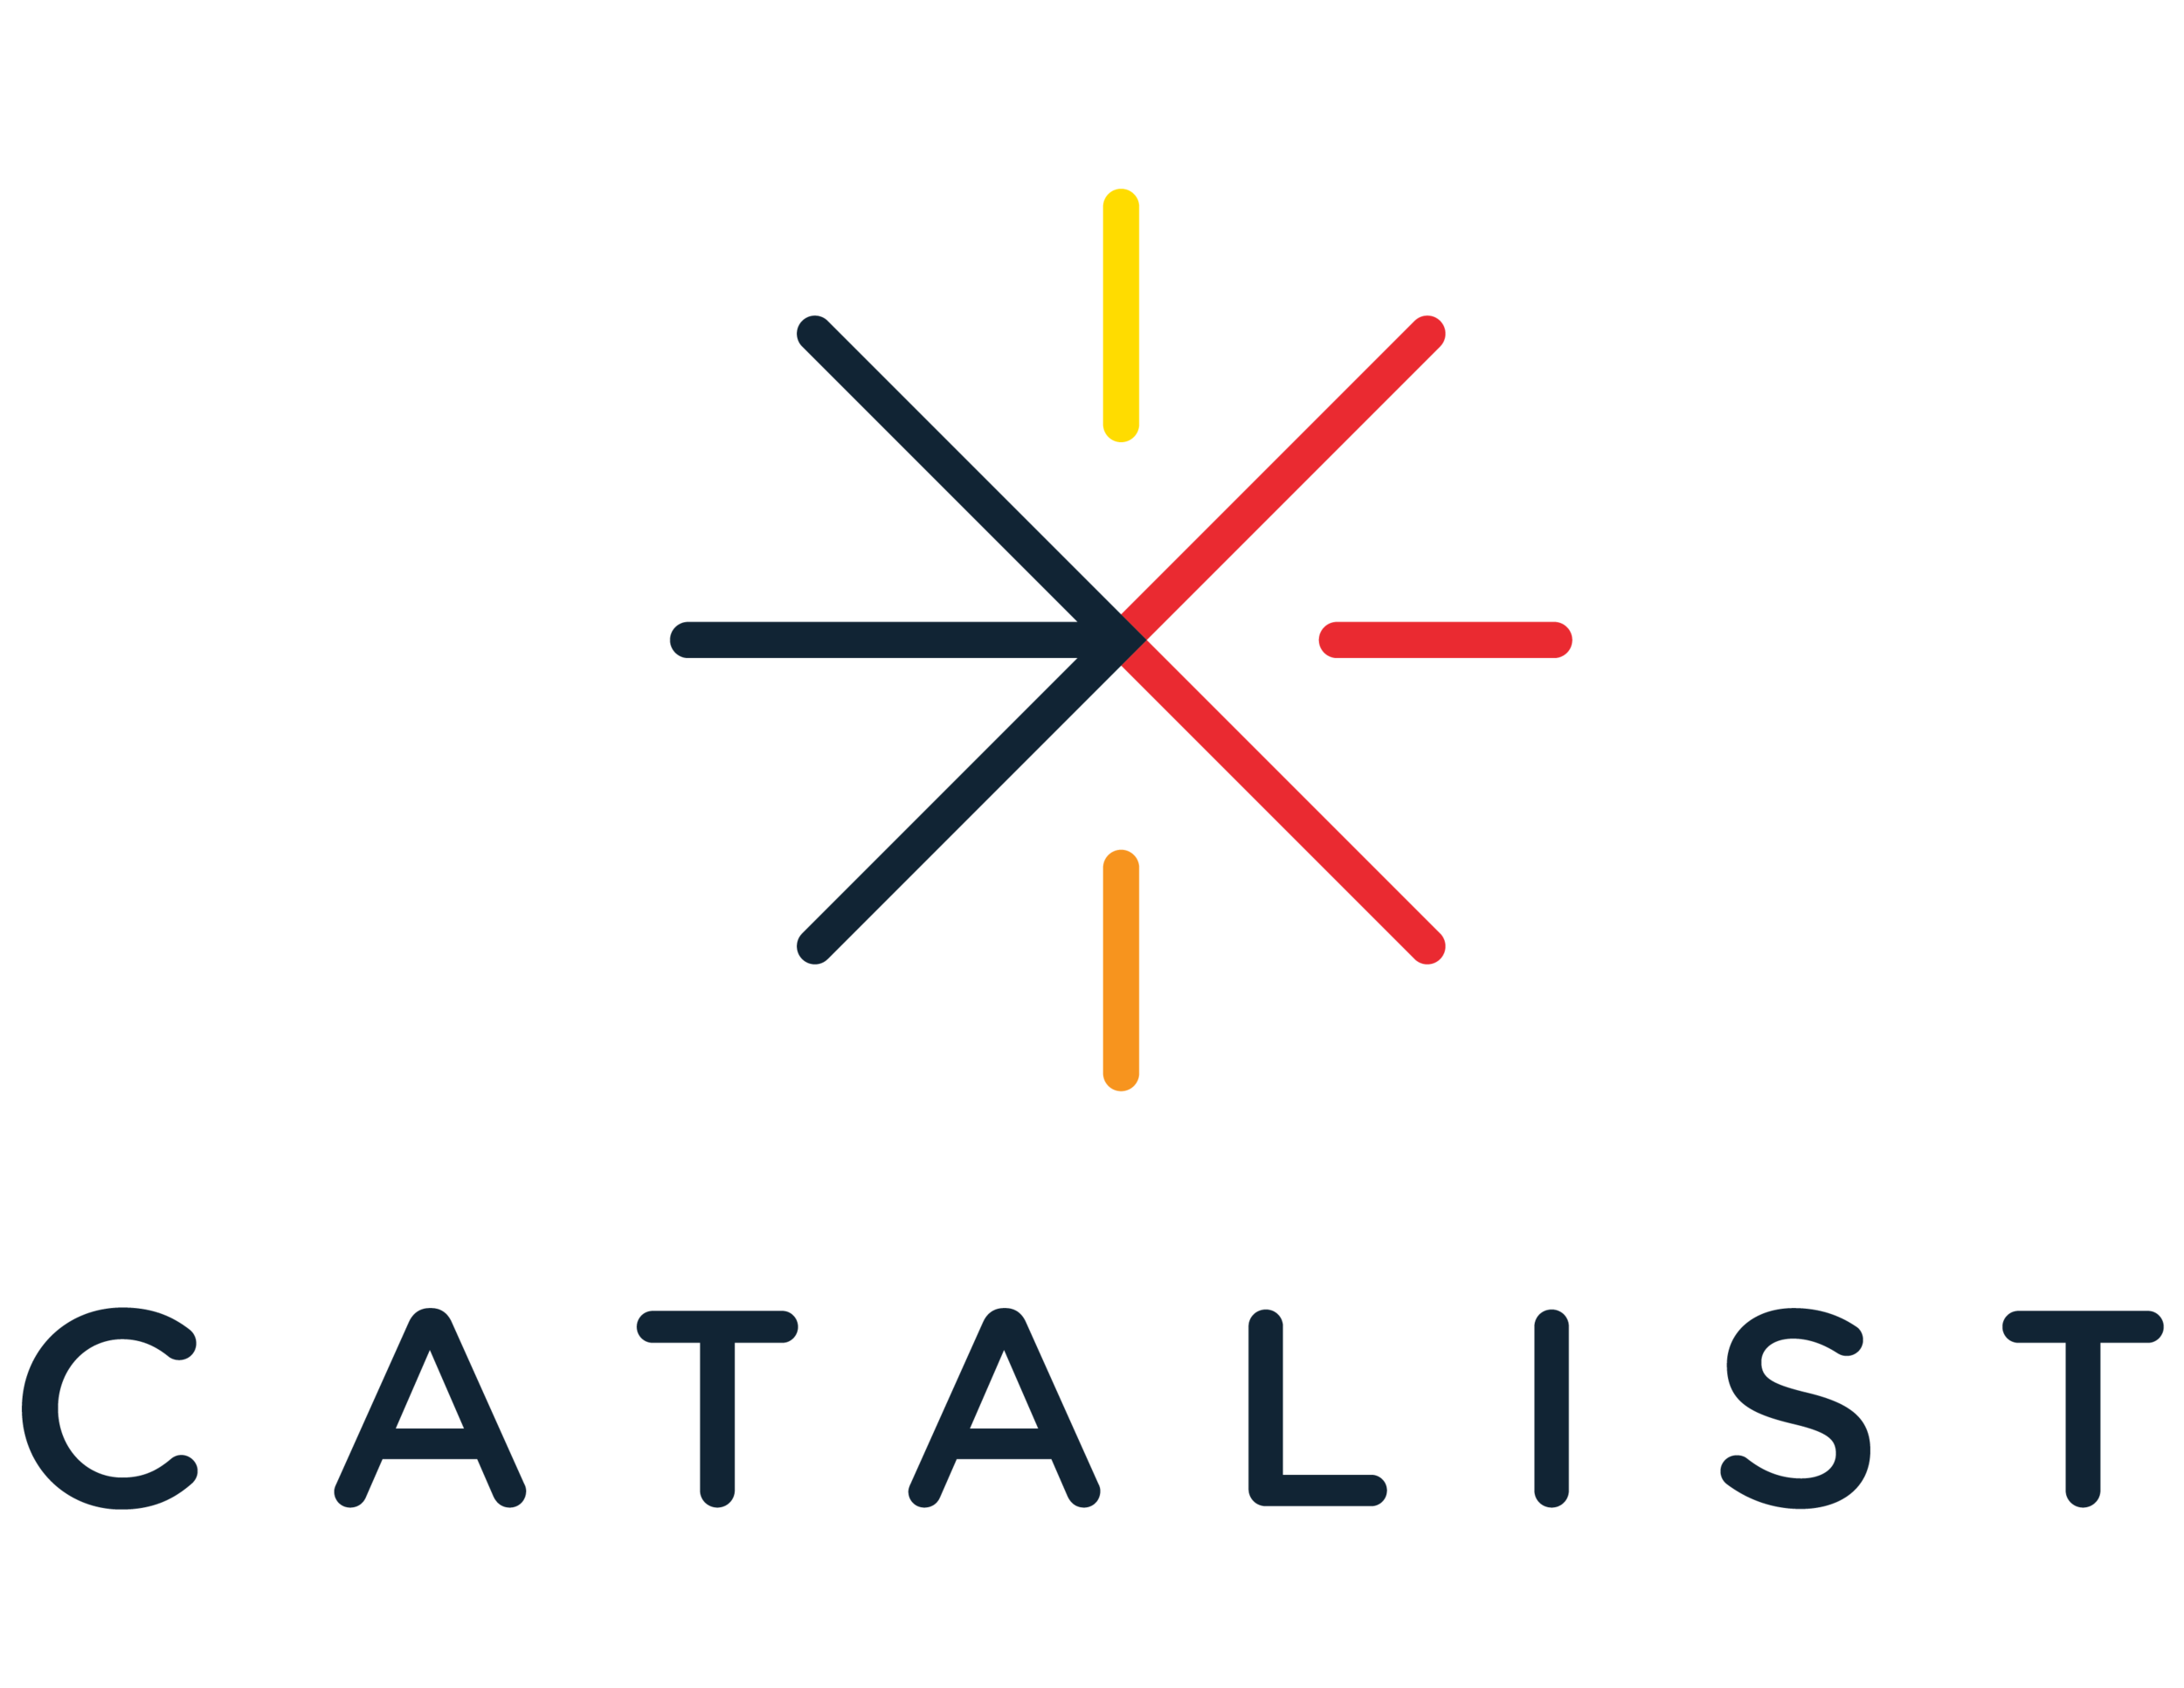 Catalist_logo-01 (1).png